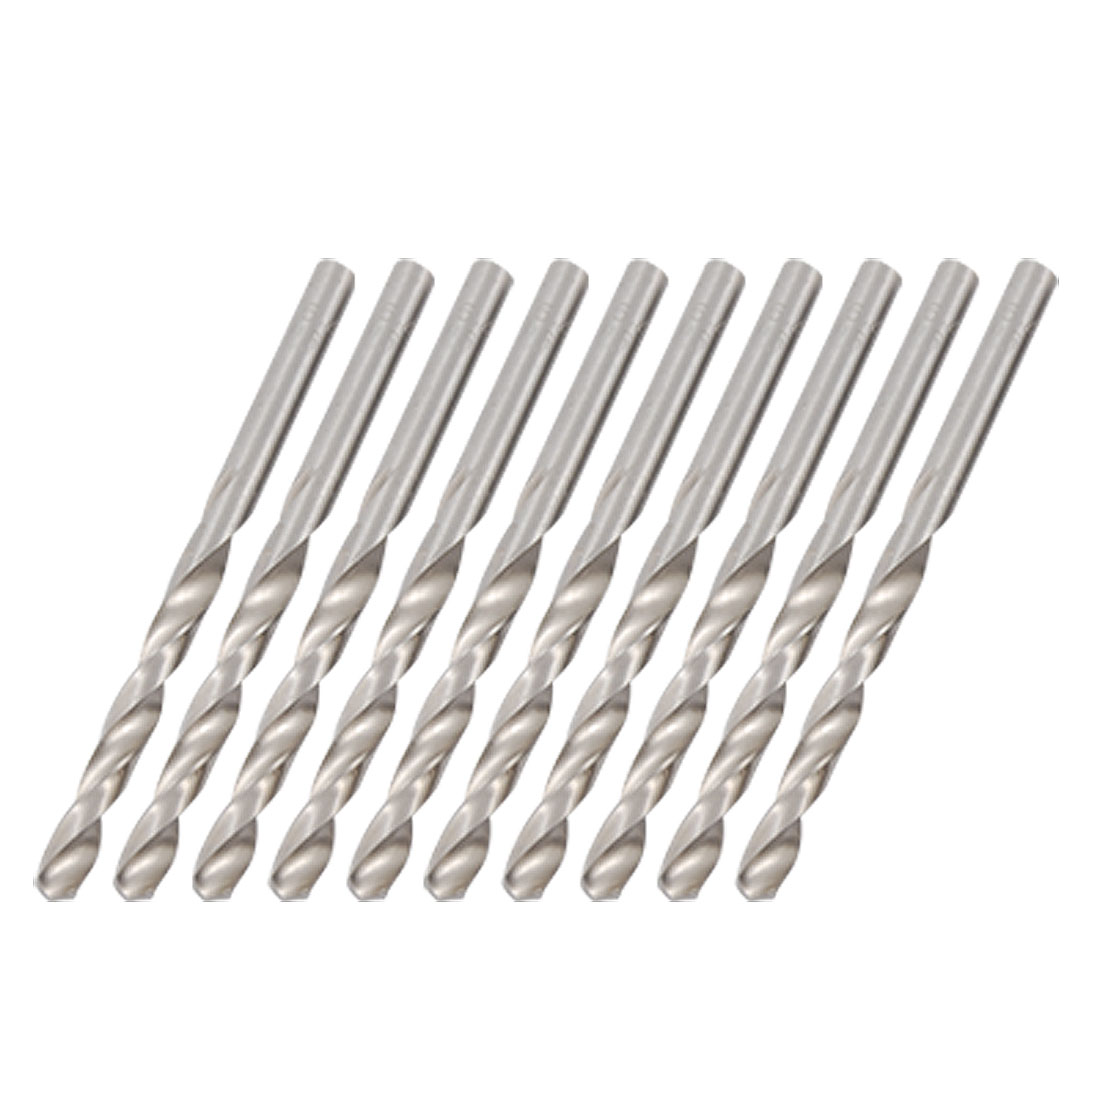 5.4mm Dia Right-hand HSS Straight Shank Twist Drill Bits 10pcs